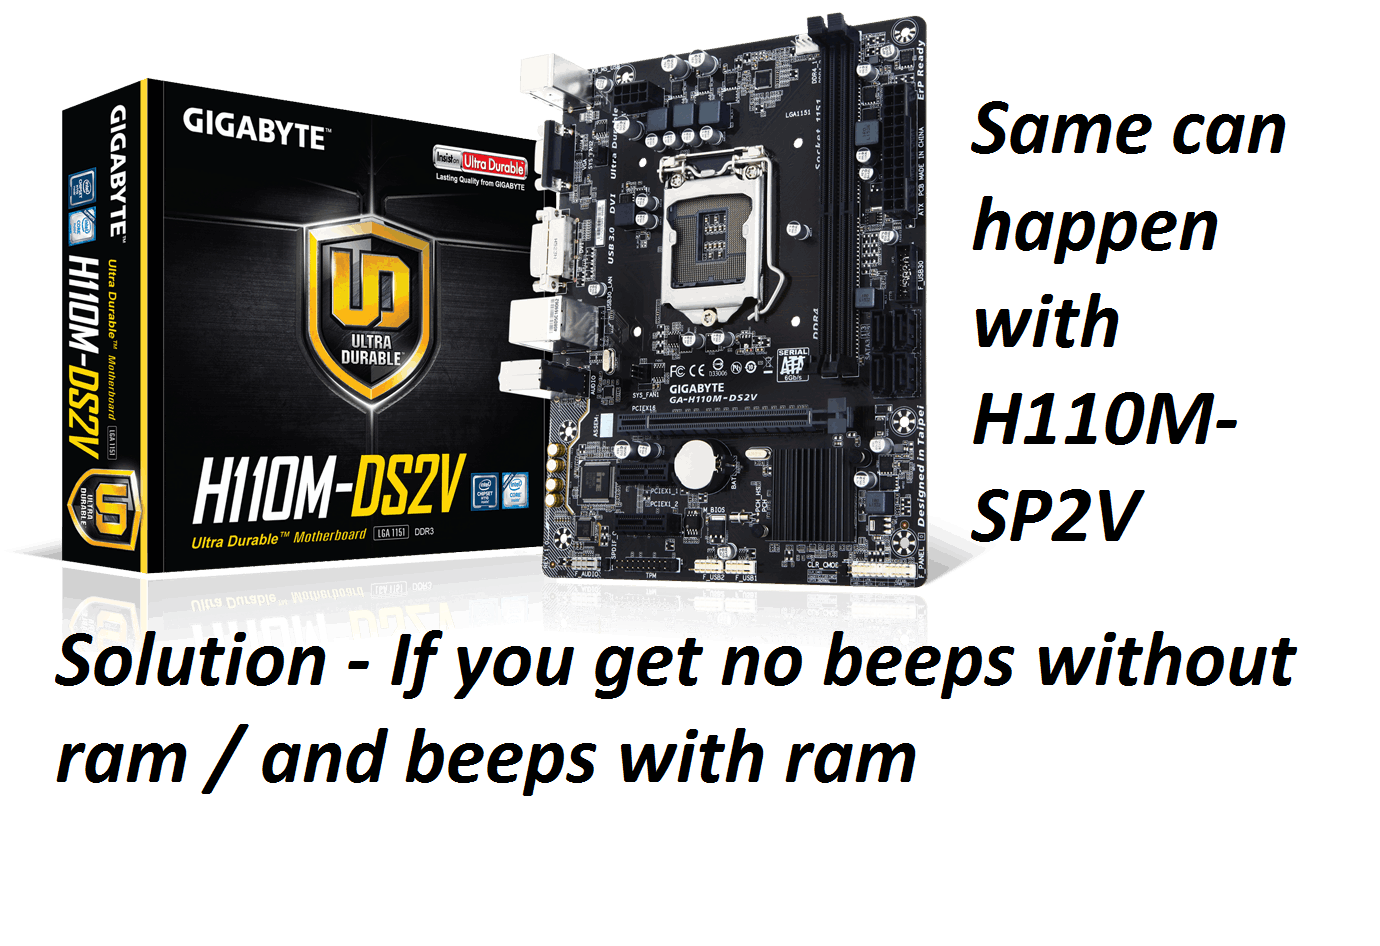 H110M SP2V without ram no beeps and with RAM error beeping surprisingly  . You can use this method can get solutions .